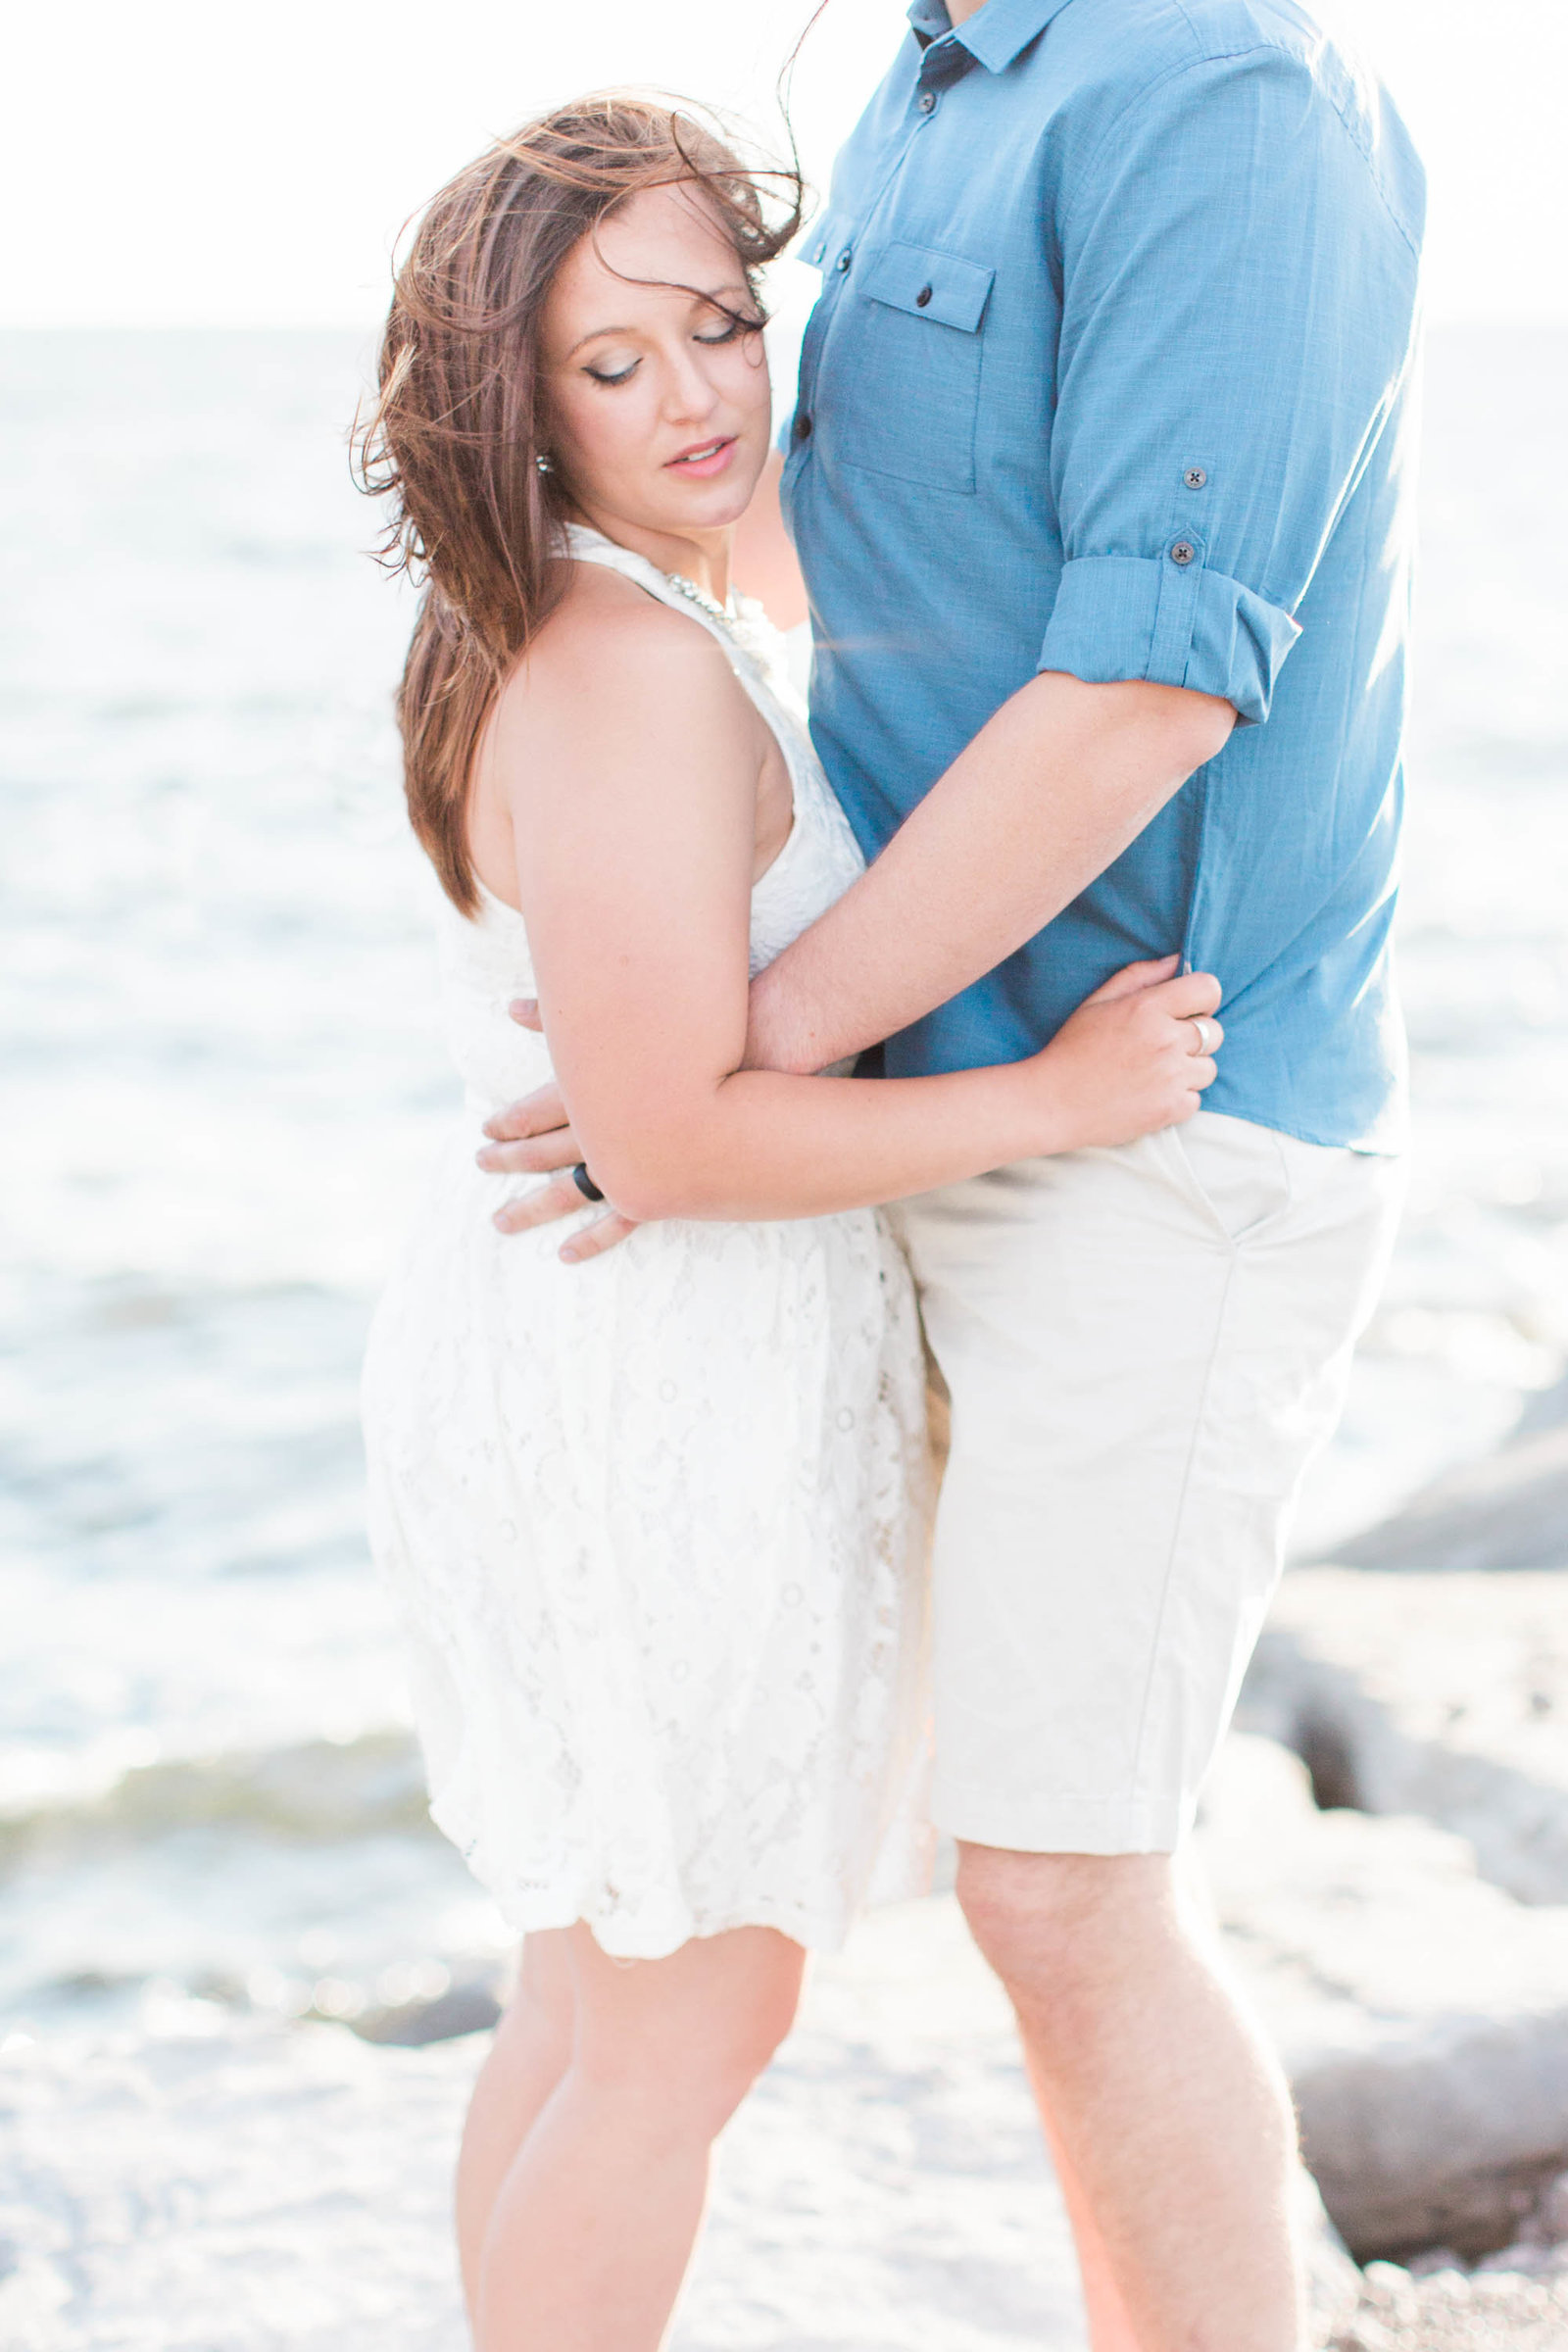 upstate_new_york_wedding_photographer_sackets_harbor_syracuse_fort_drum_lake_ontario (13 of 84)